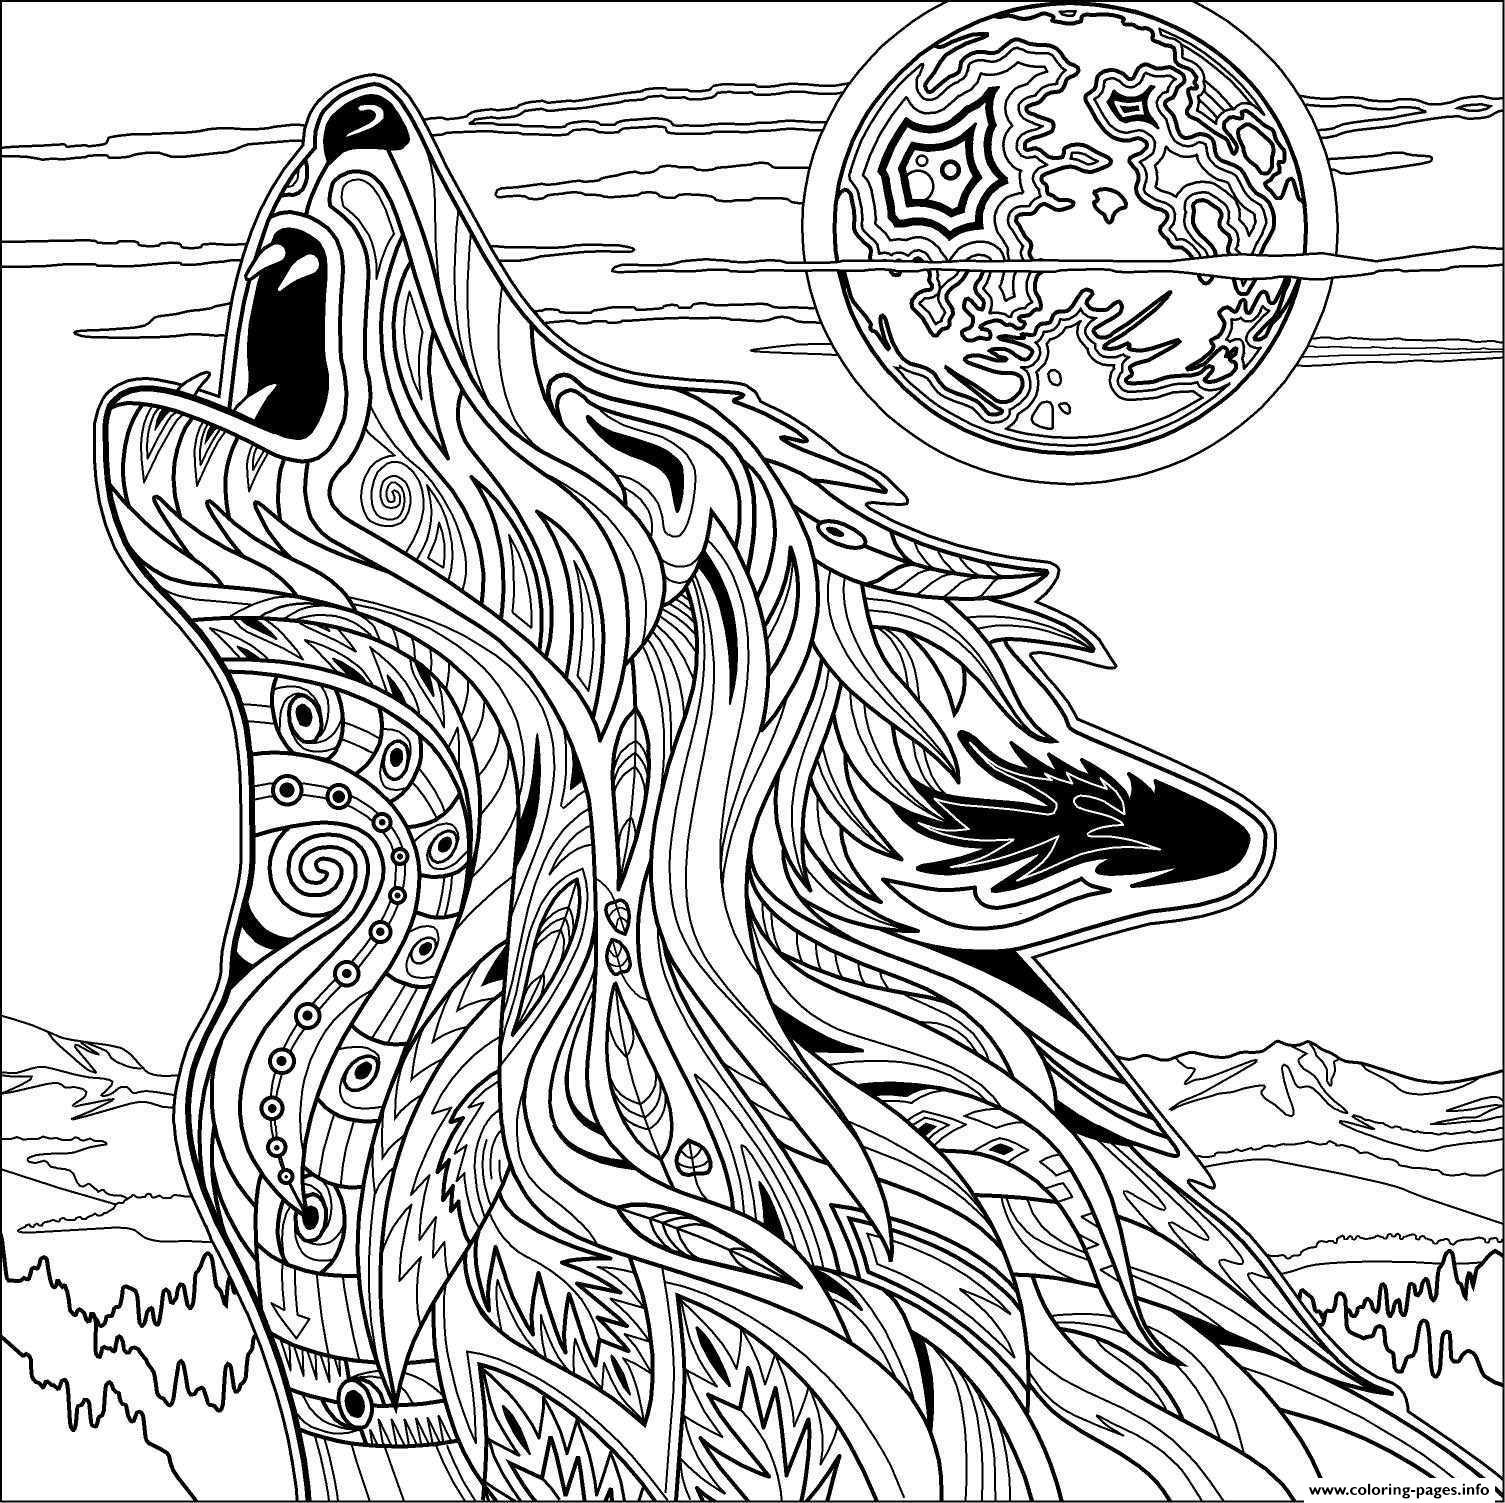 Fresh Wolf Mandala Coloring Pages Collection Collection Of Modern Intricate Mandala Coloring Pages Coloring for Good Mandala to Print